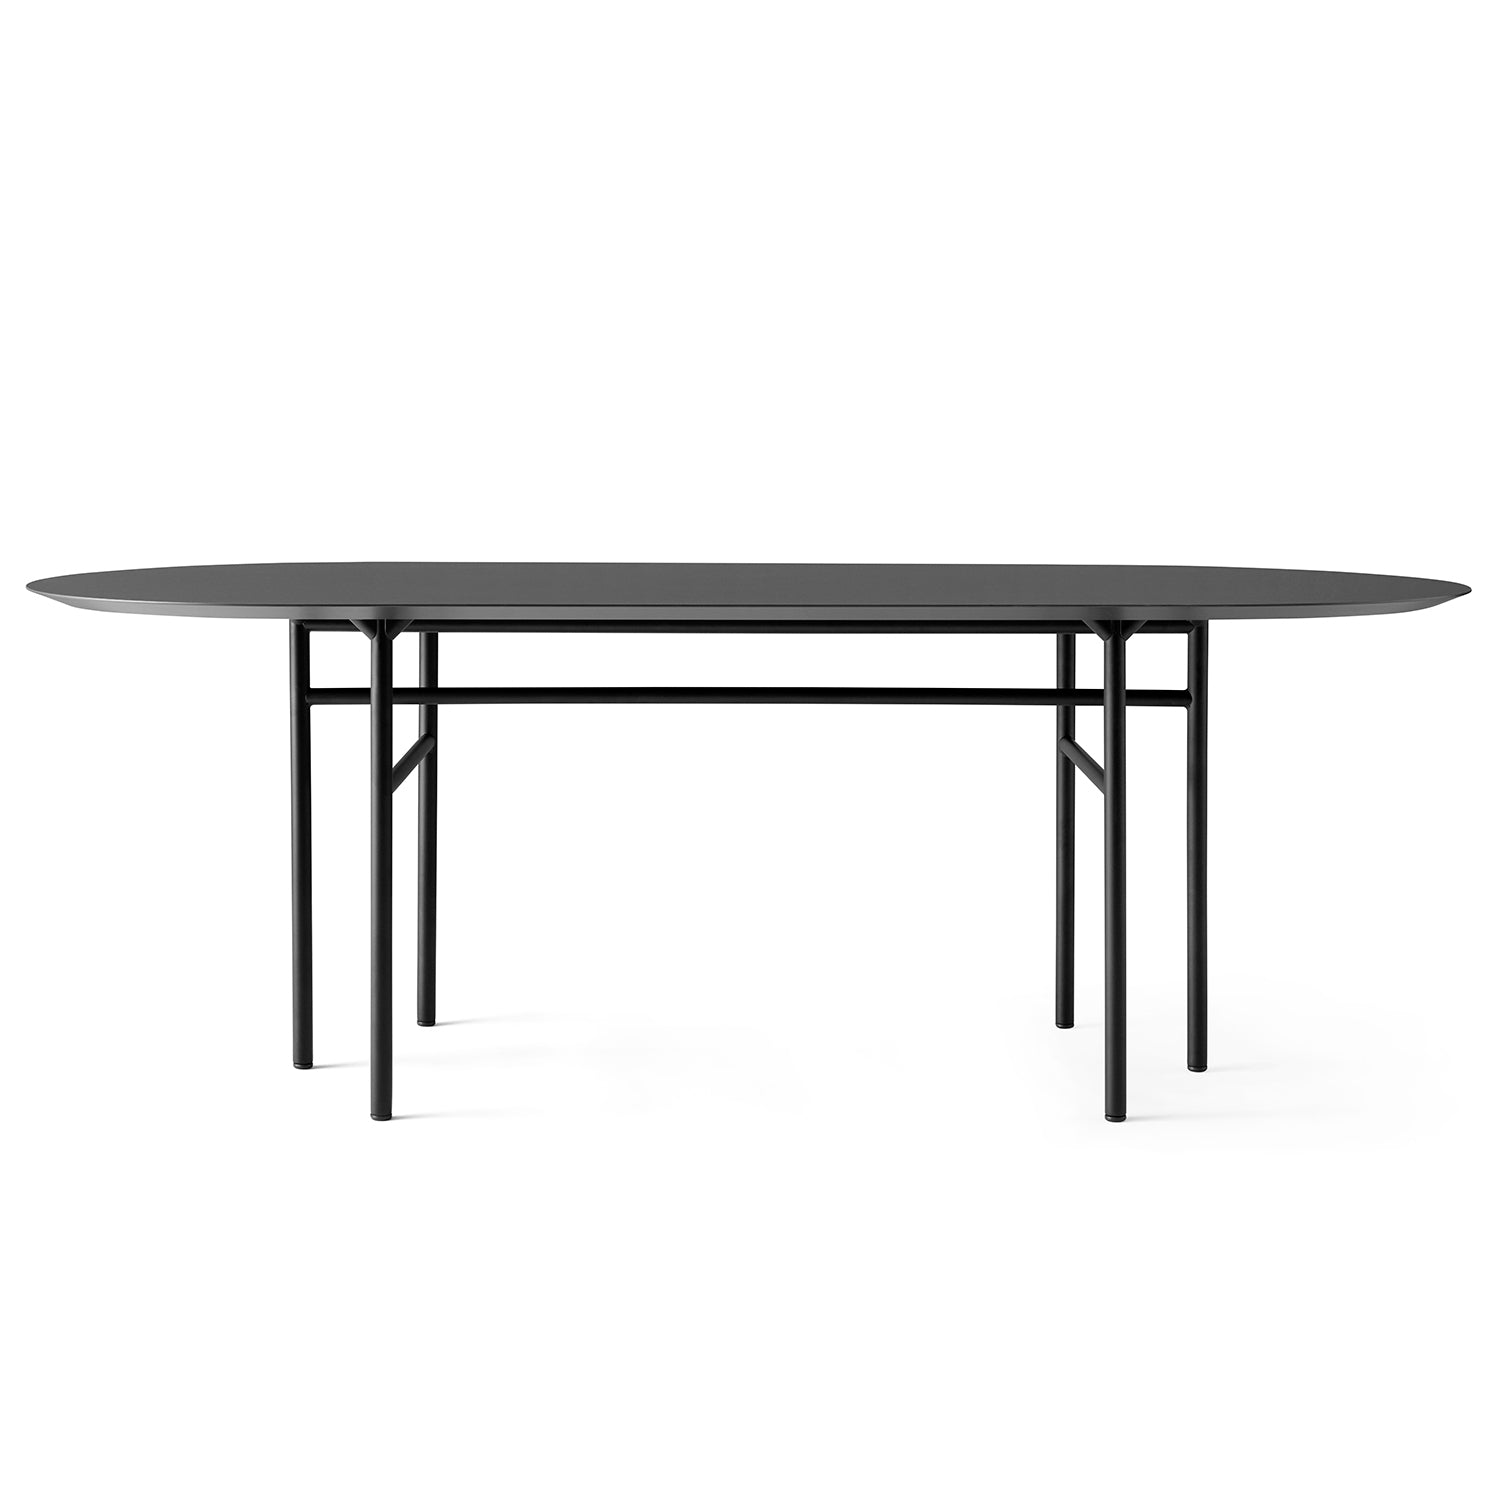 Snaregade Oval Table: Black + Black Oak Veneer